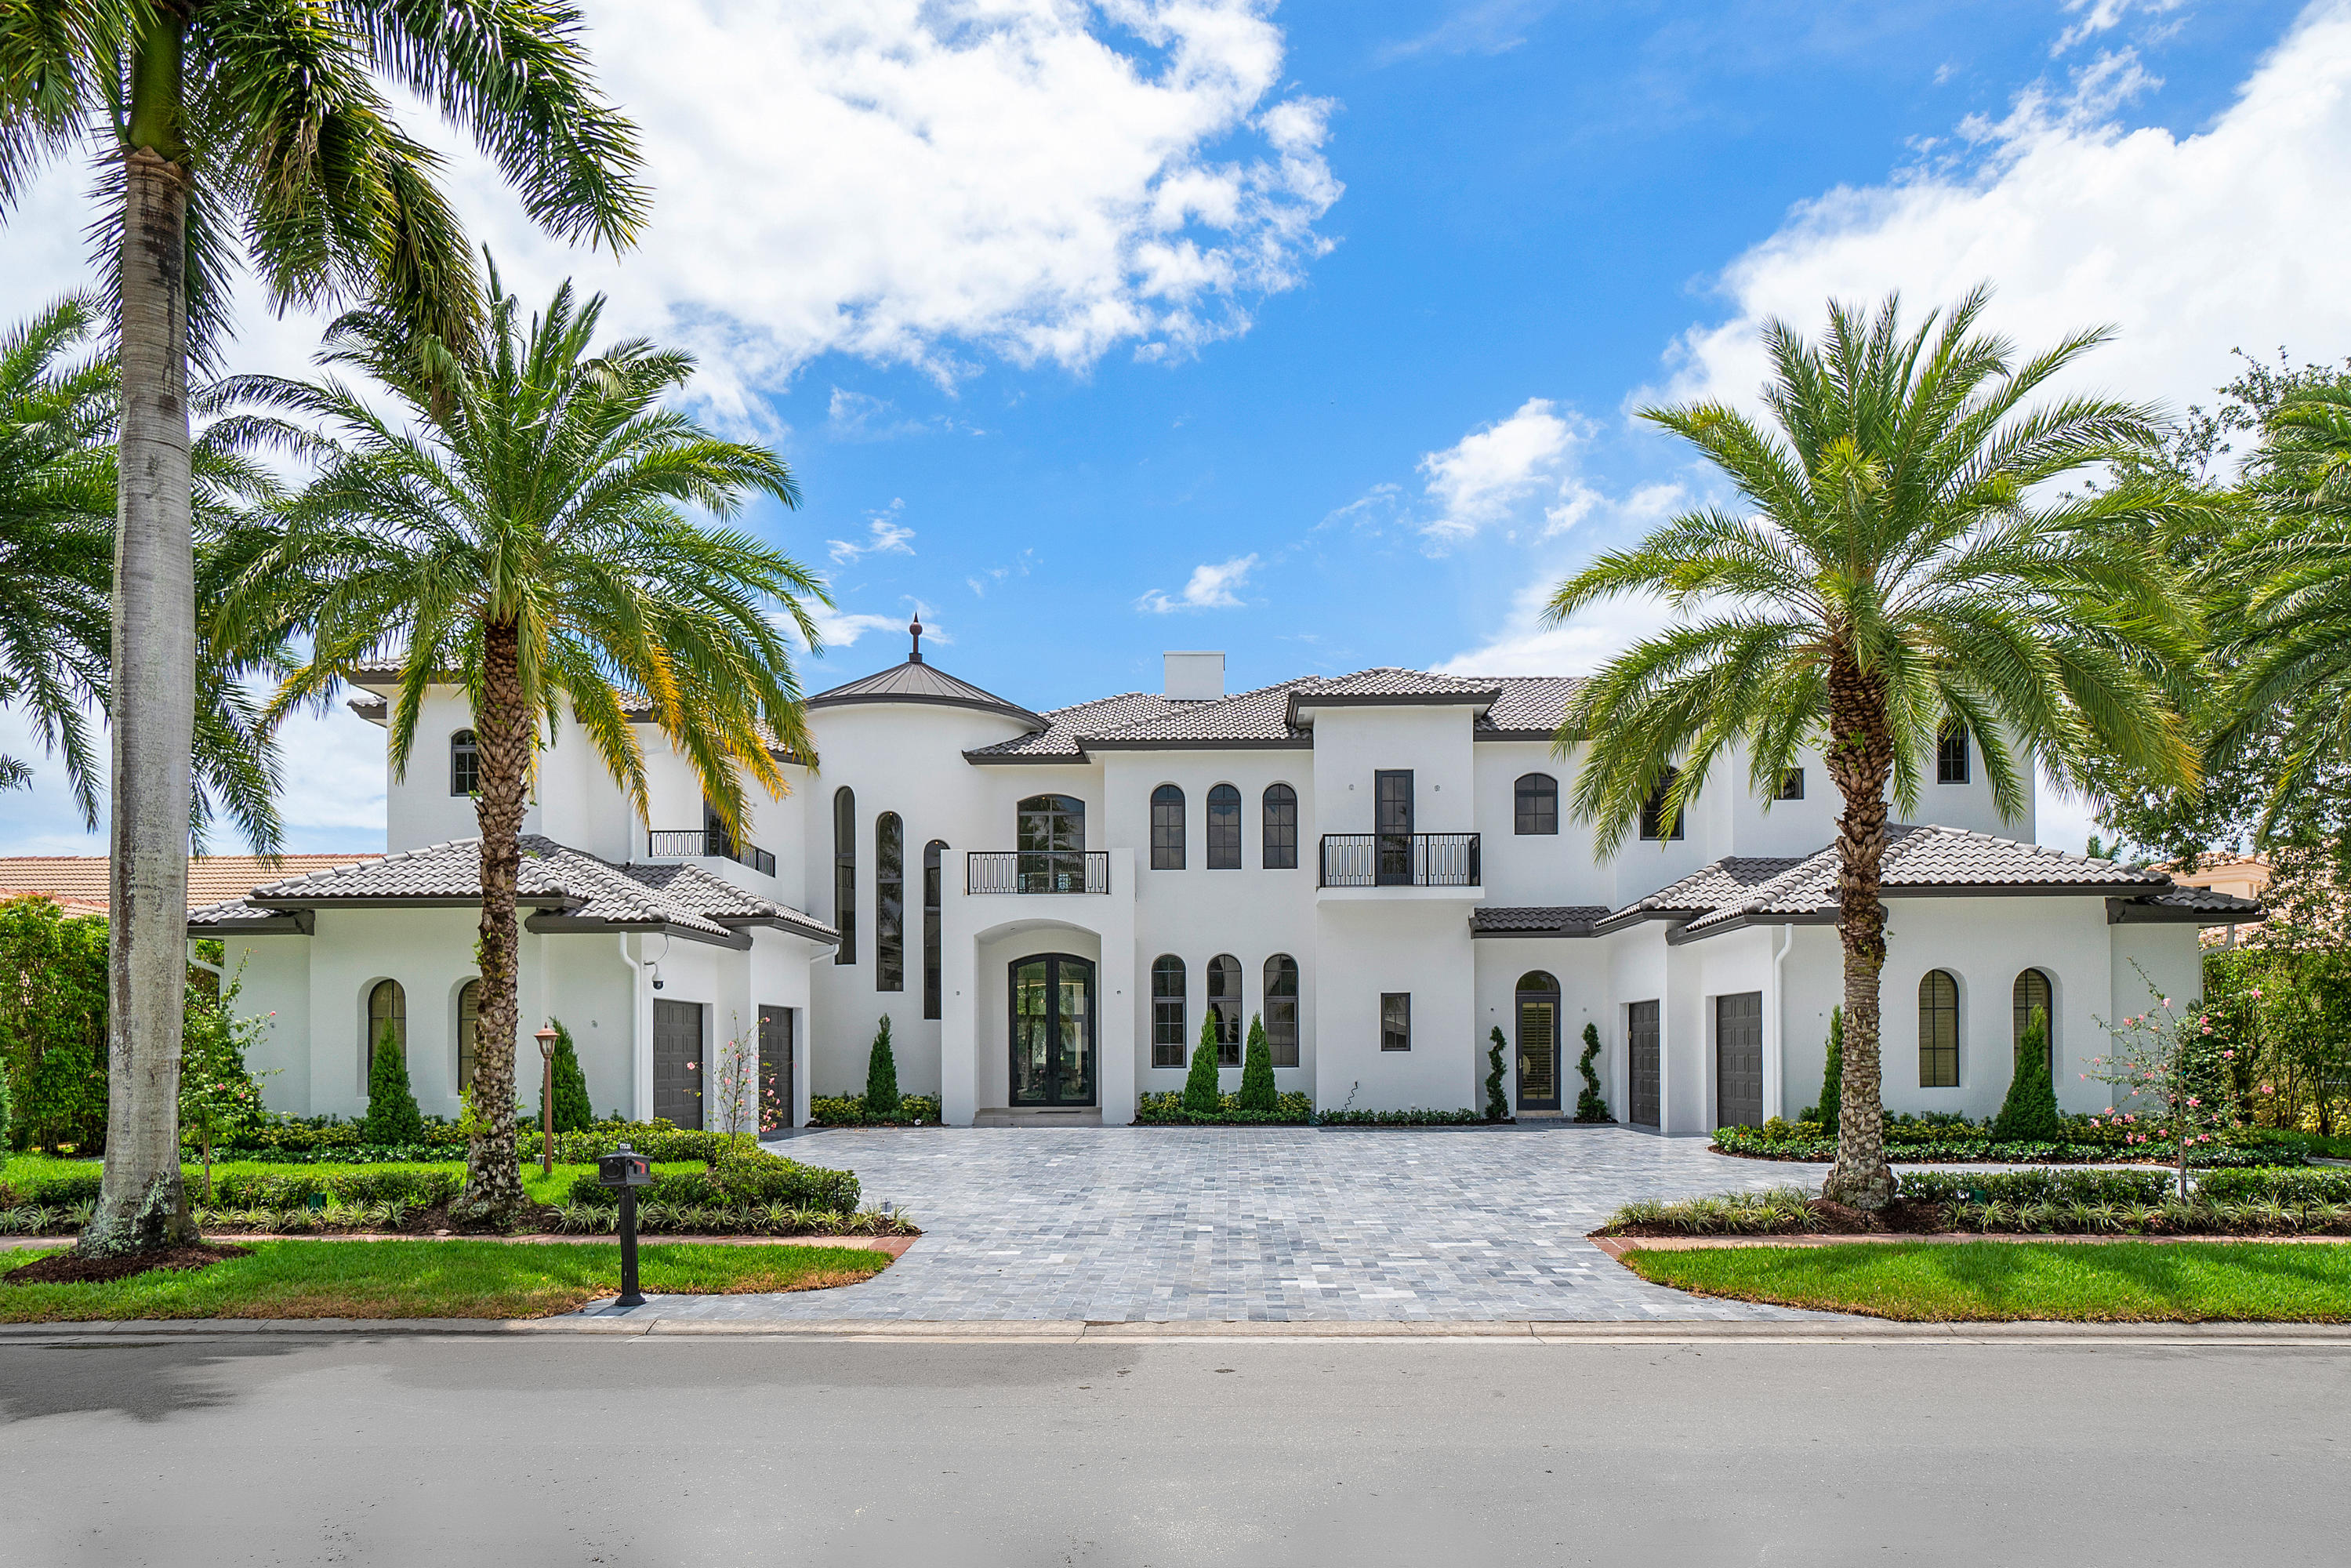 Home for sale in St. Andrews Country Club Boca Raton Florida